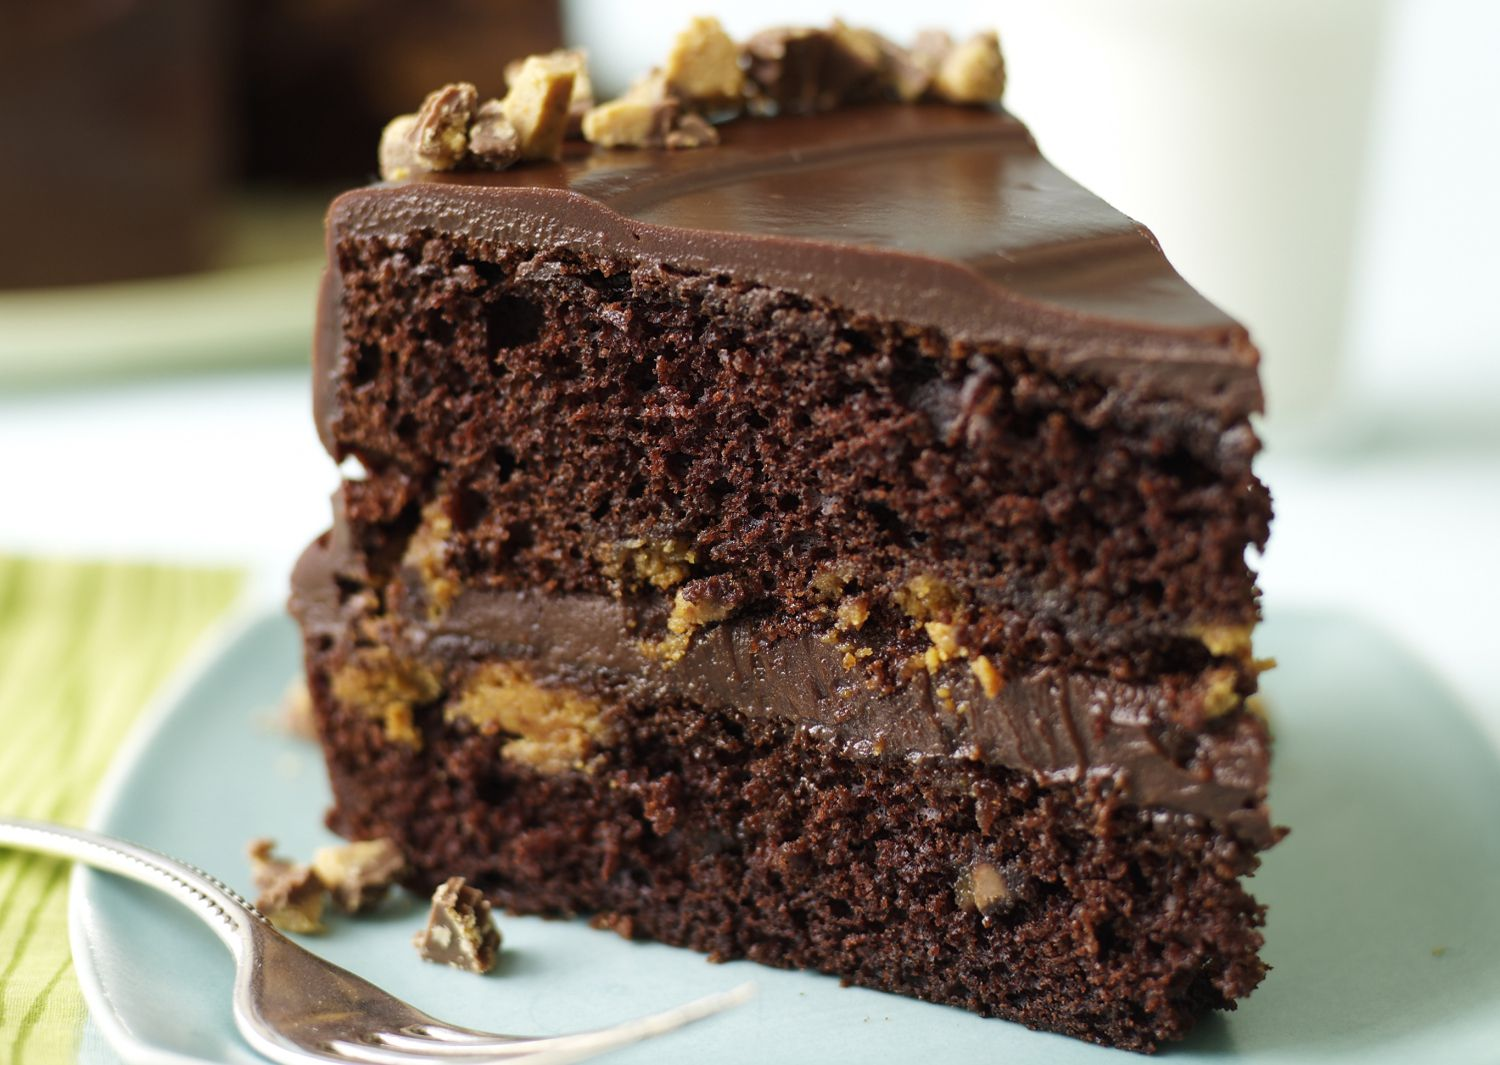 Chocolate Sour Cream Devil's Food Cake Recipe